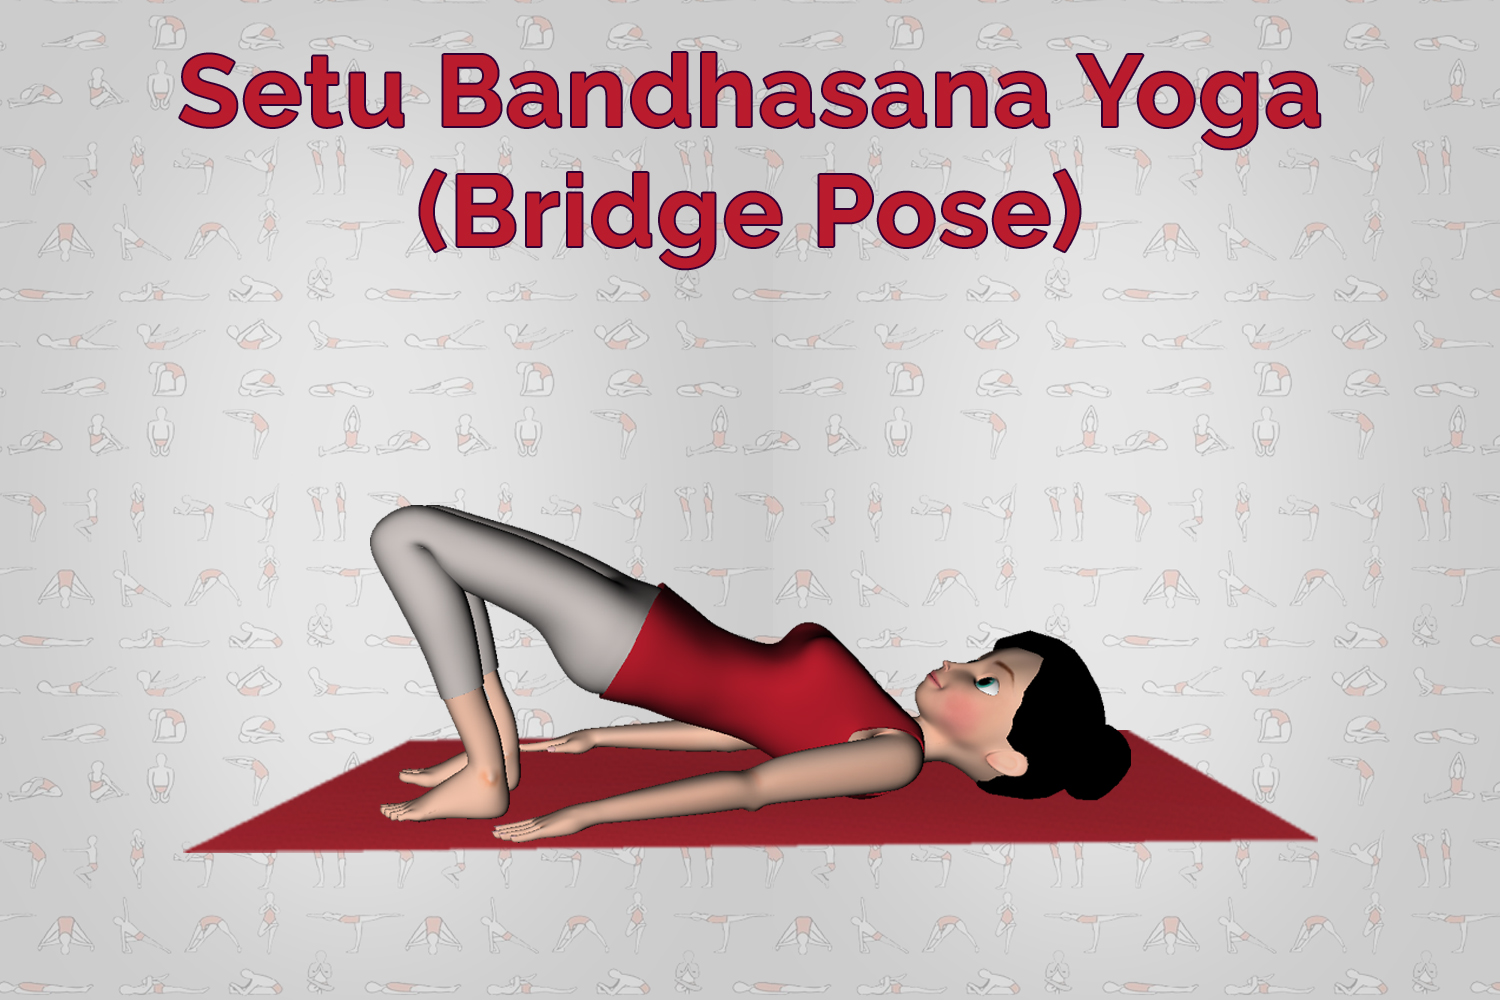 Yoga poses | Setu Bandhasana (Bridge Pose) | 7pranayama